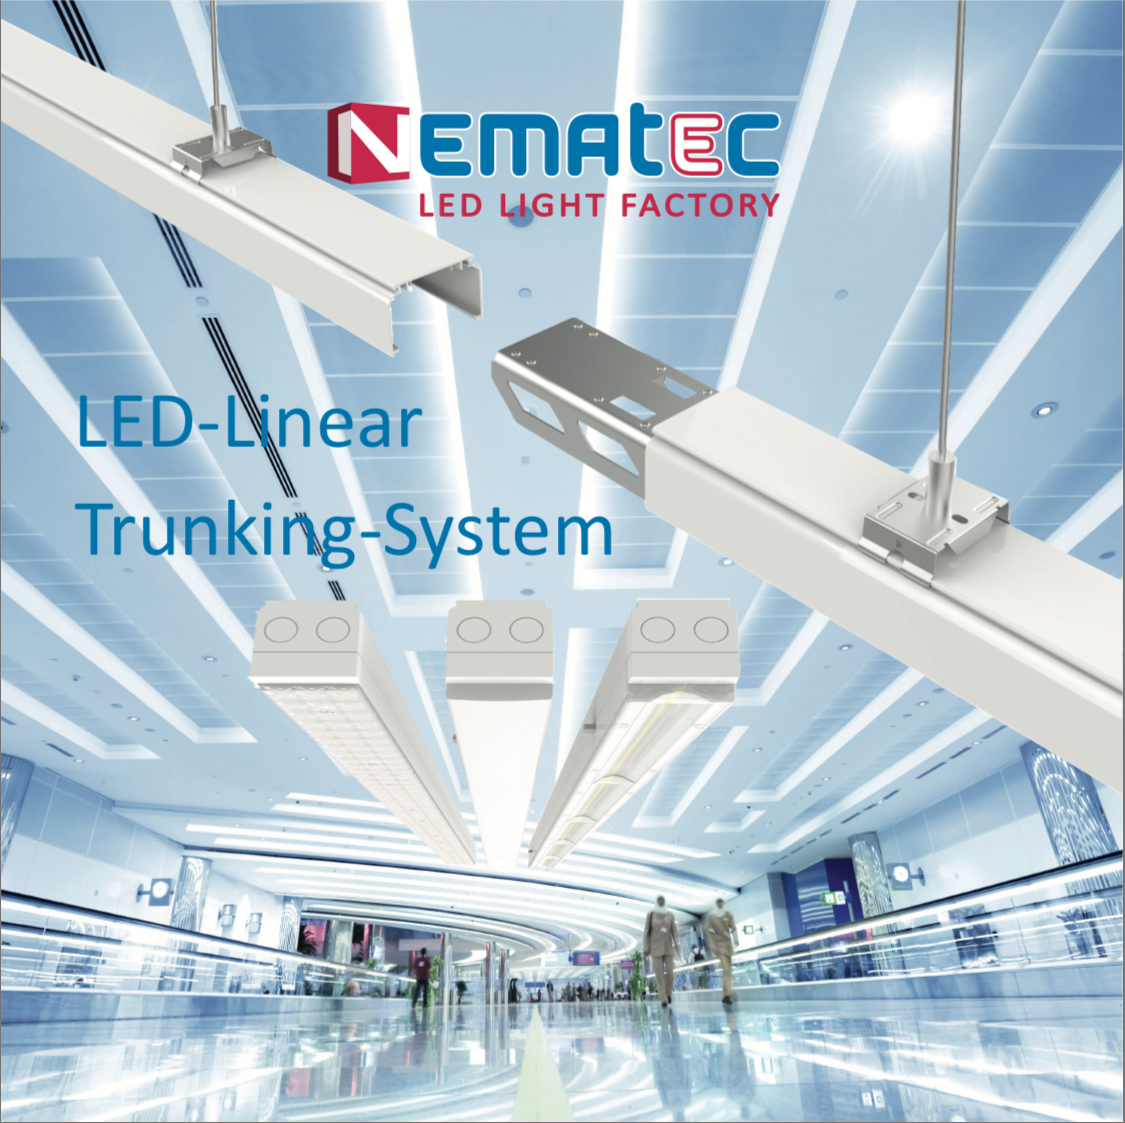 led_linear_trunking_system.jgp